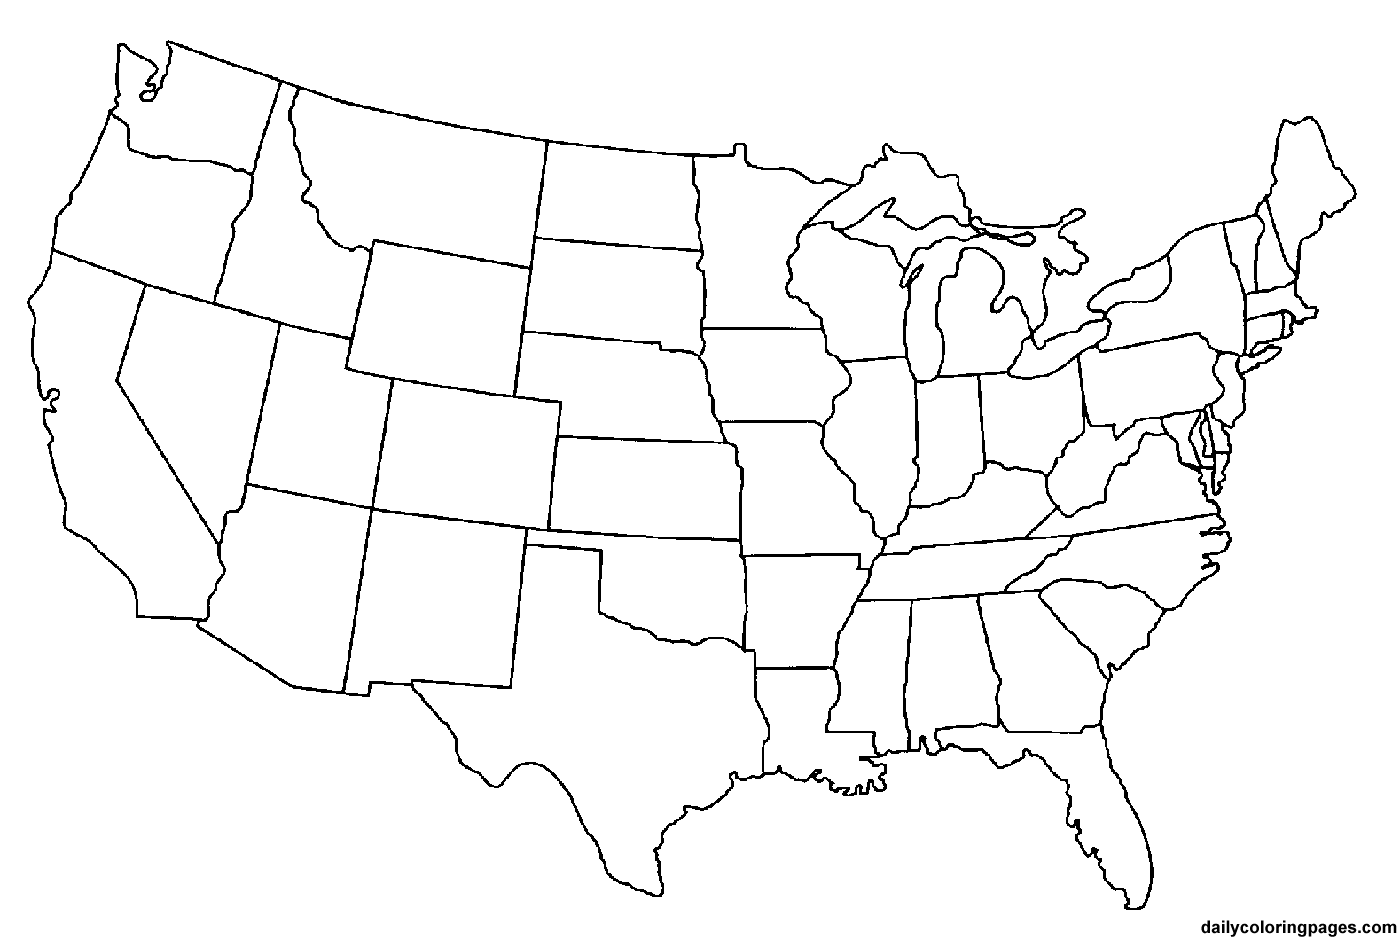 Blank Copy Of The United States Map